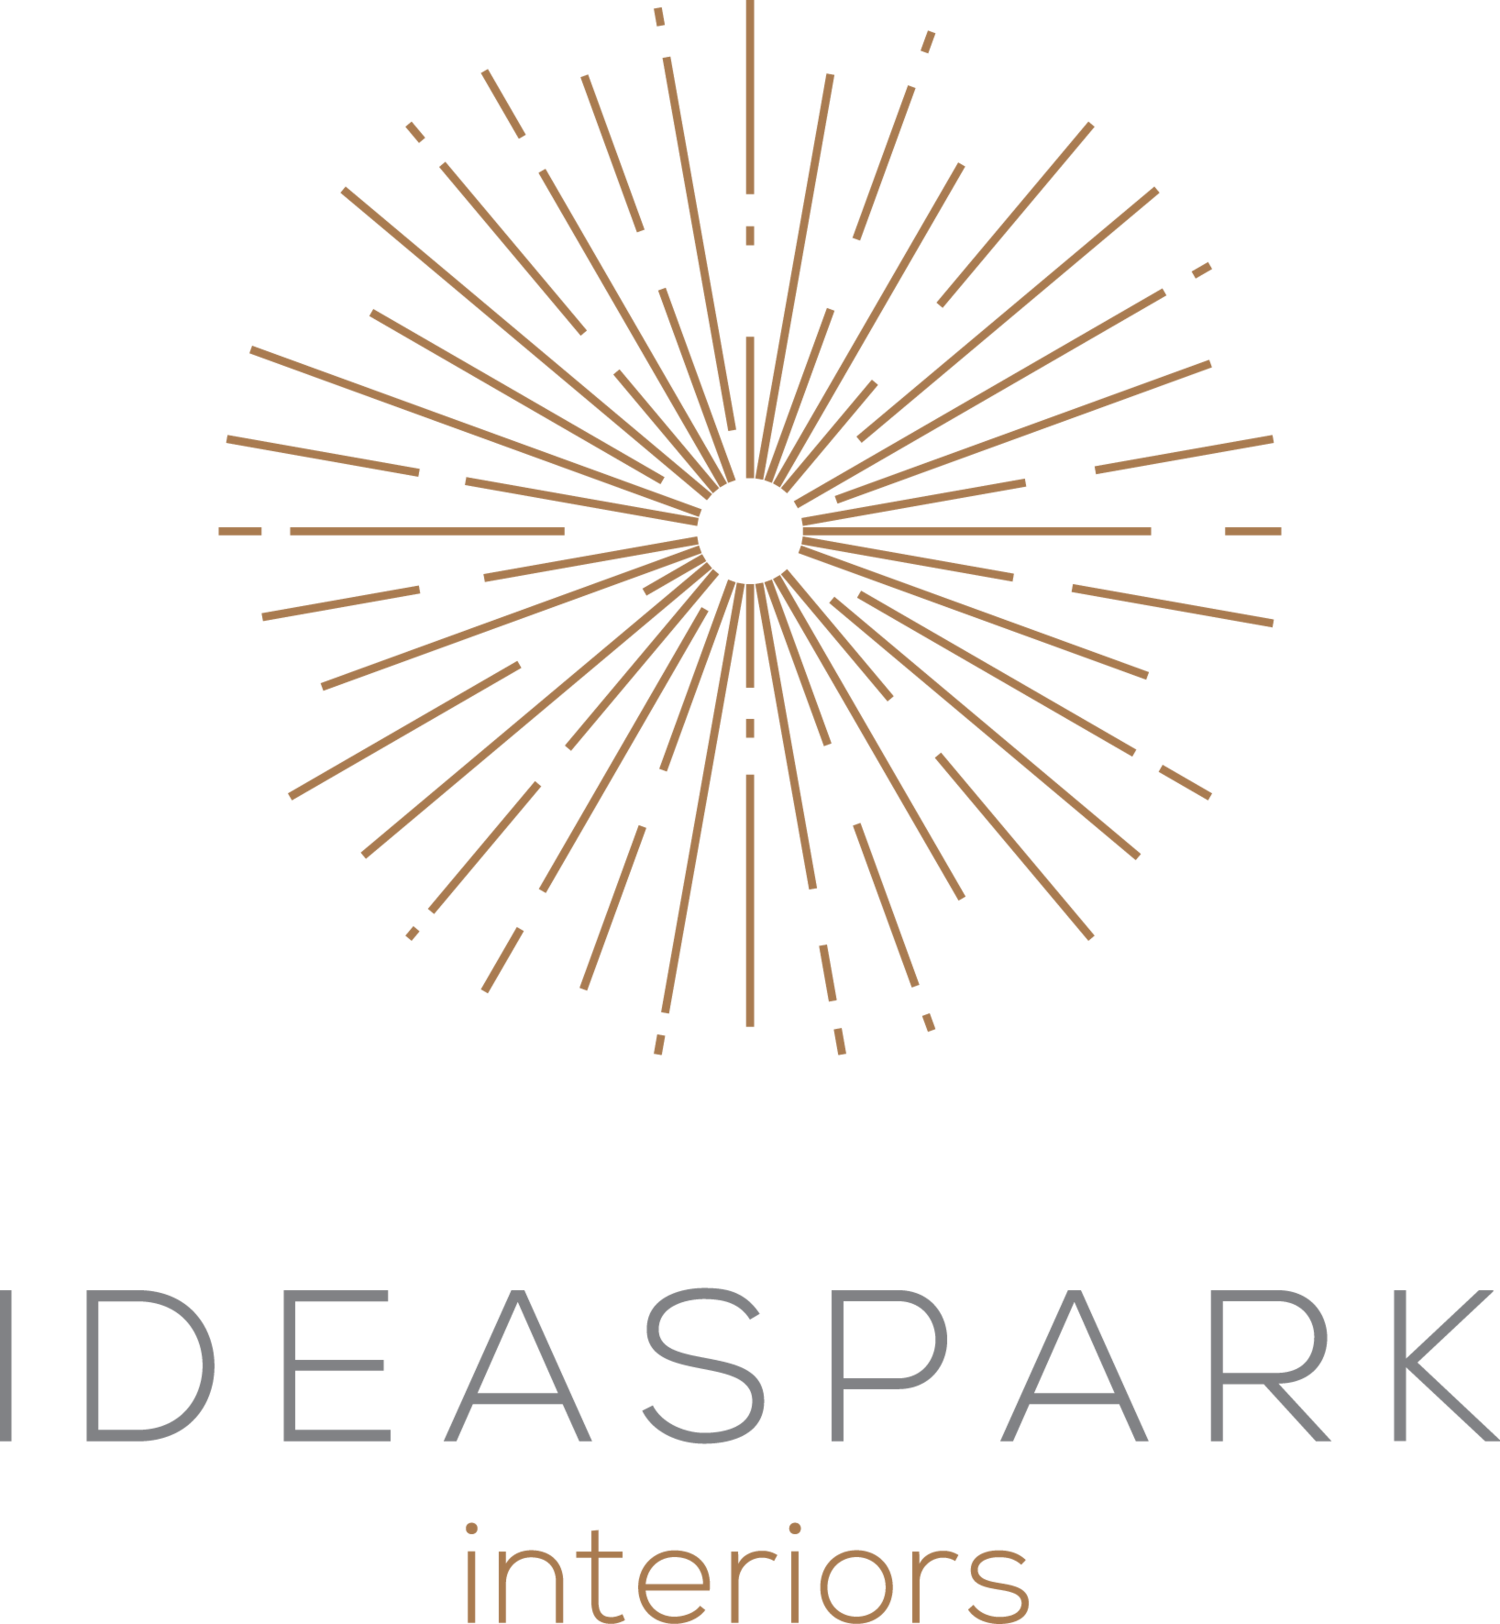 Ideaspark Interiors